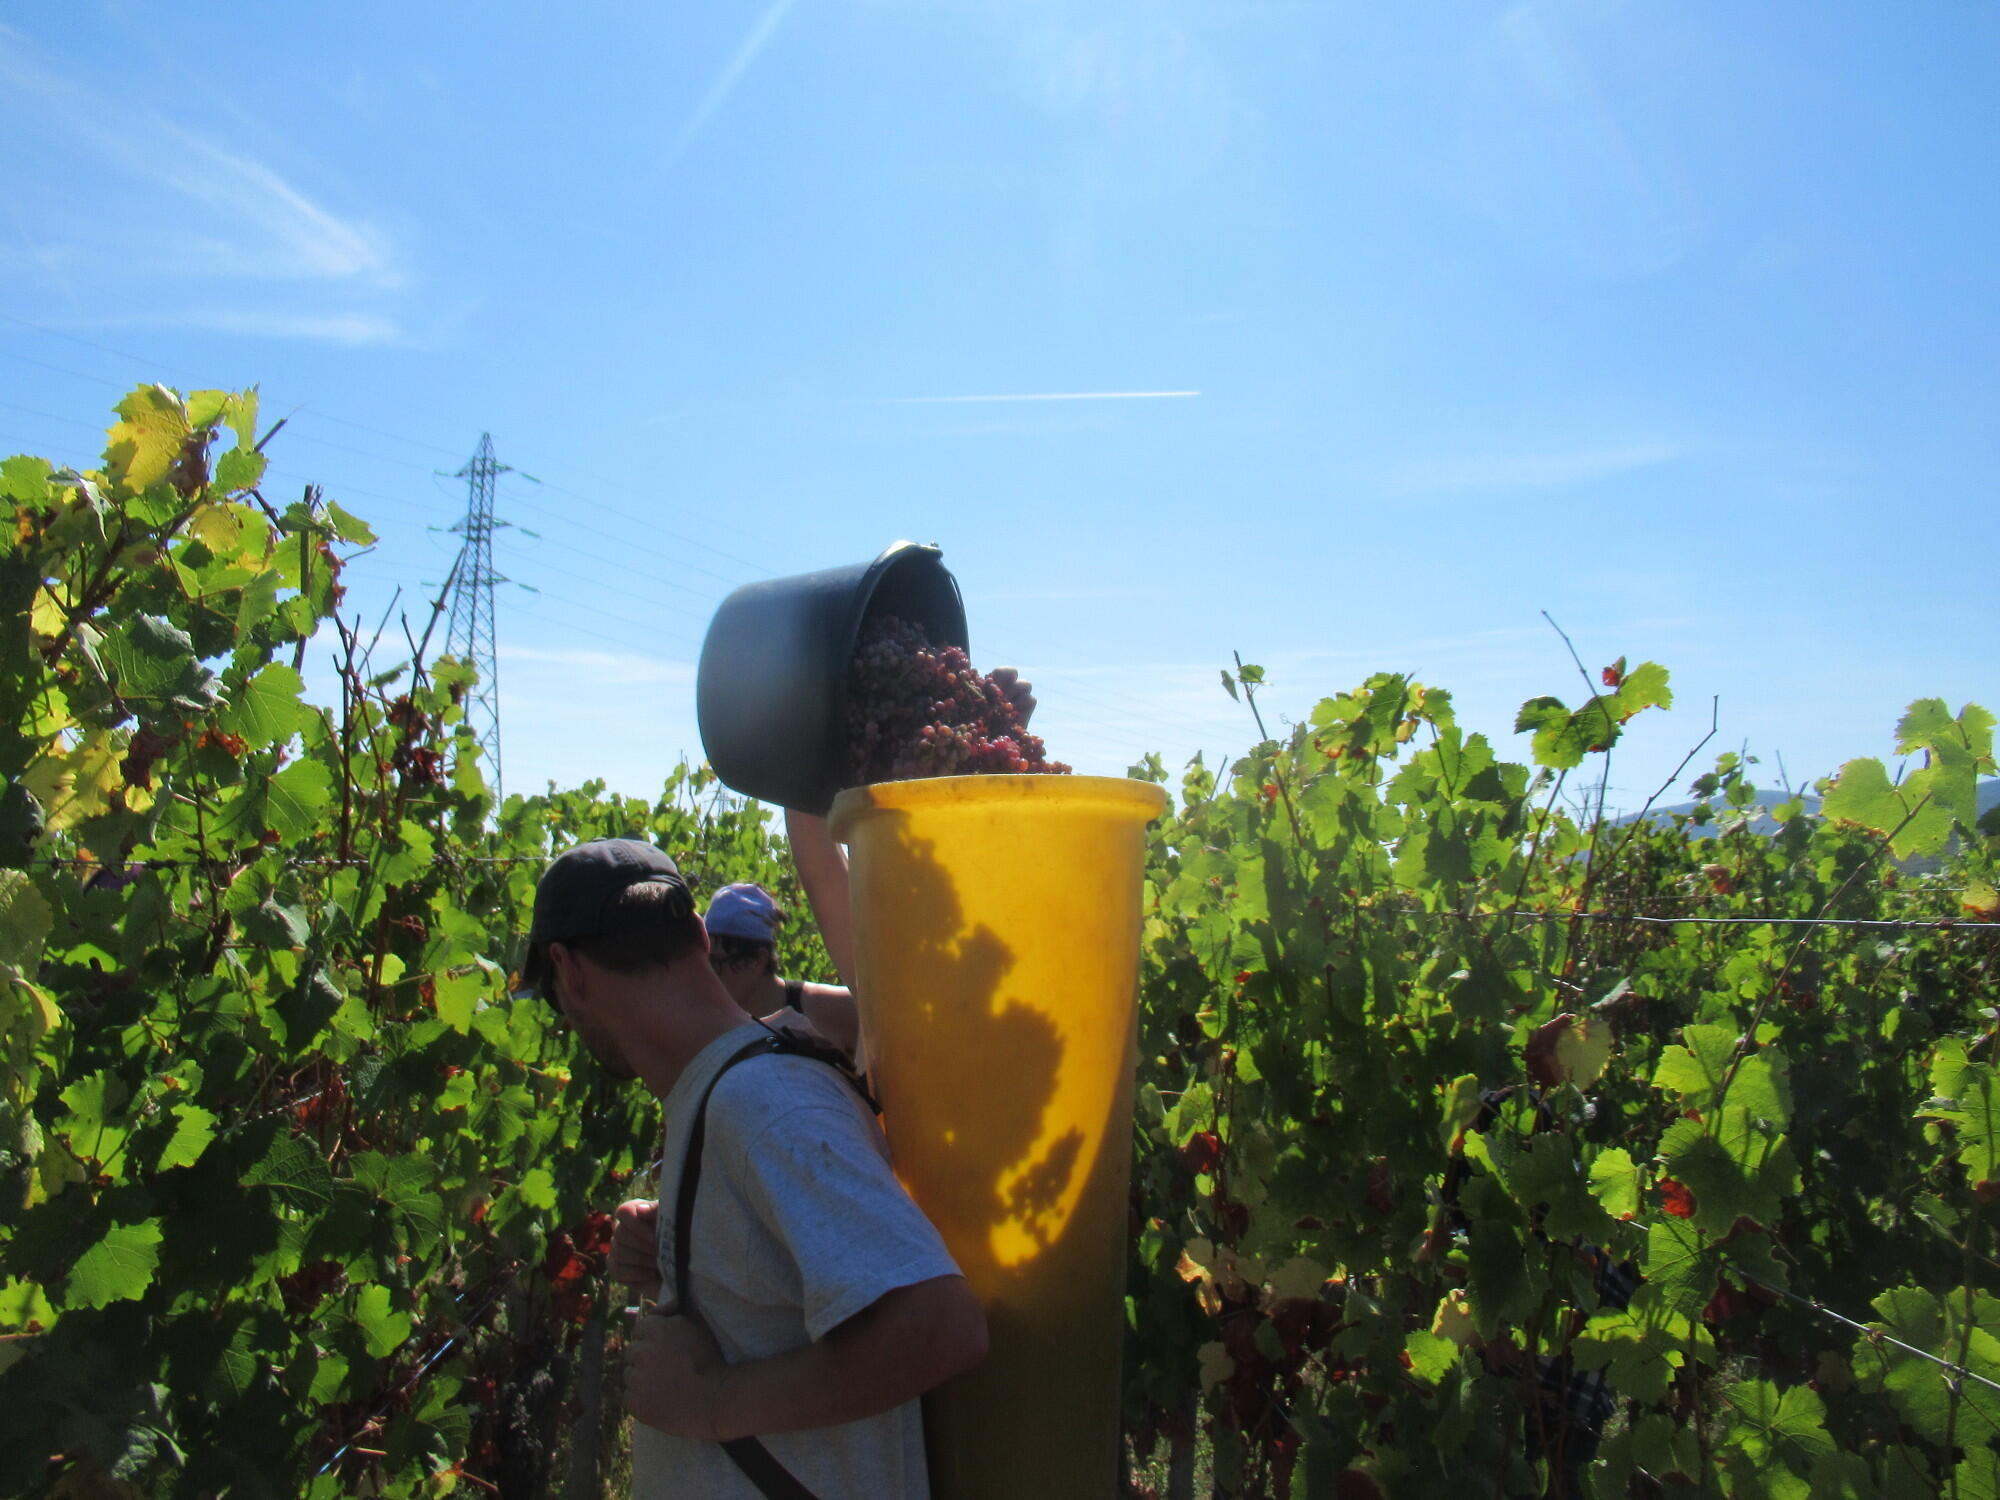 Grape harvesters near Colmar, in eastern France. Most of the porters are employees of the winery, while the cutters are seasonal workers.